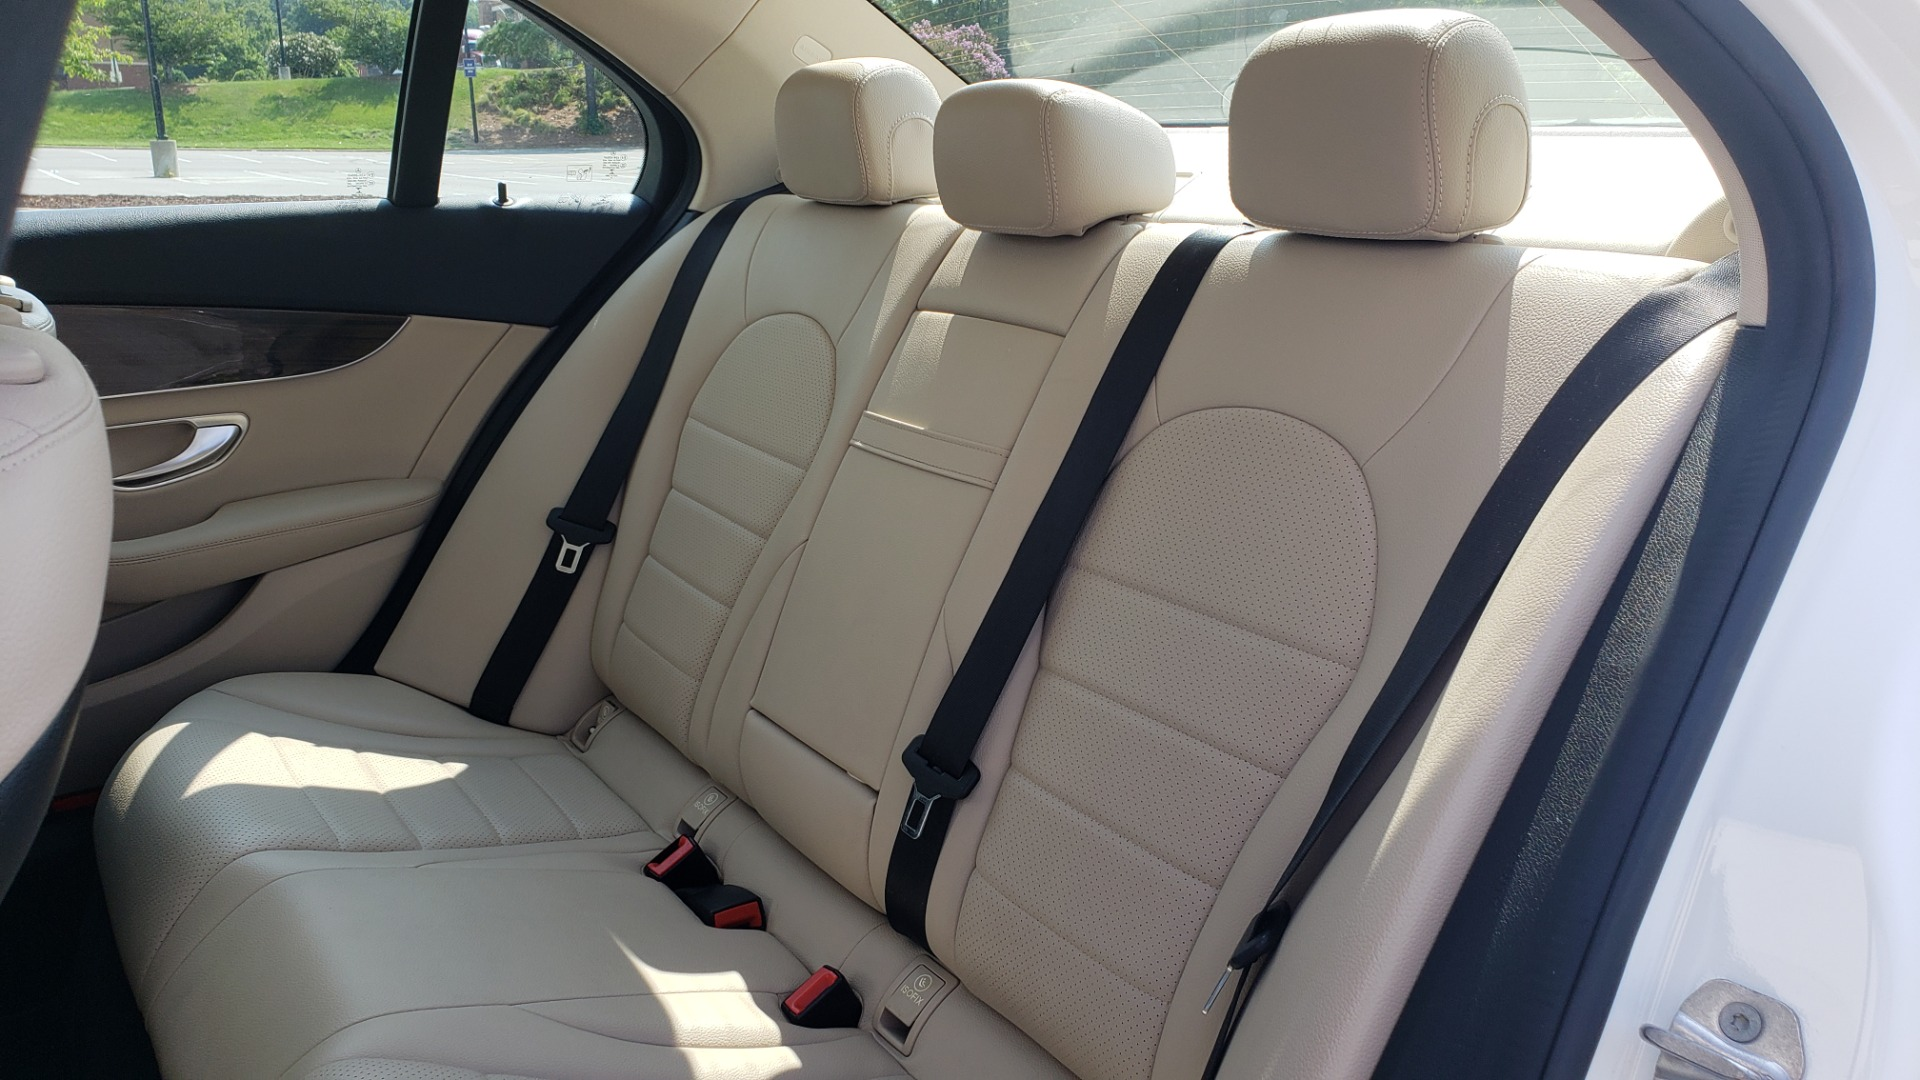 Used 2018 Mercedes-Benz C-CLASS C 300 PREMIUM / KEYLESS-GO / APPLE / PANO-ROOF / REARVIEW for sale $28,295 at Formula Imports in Charlotte NC 28227 58